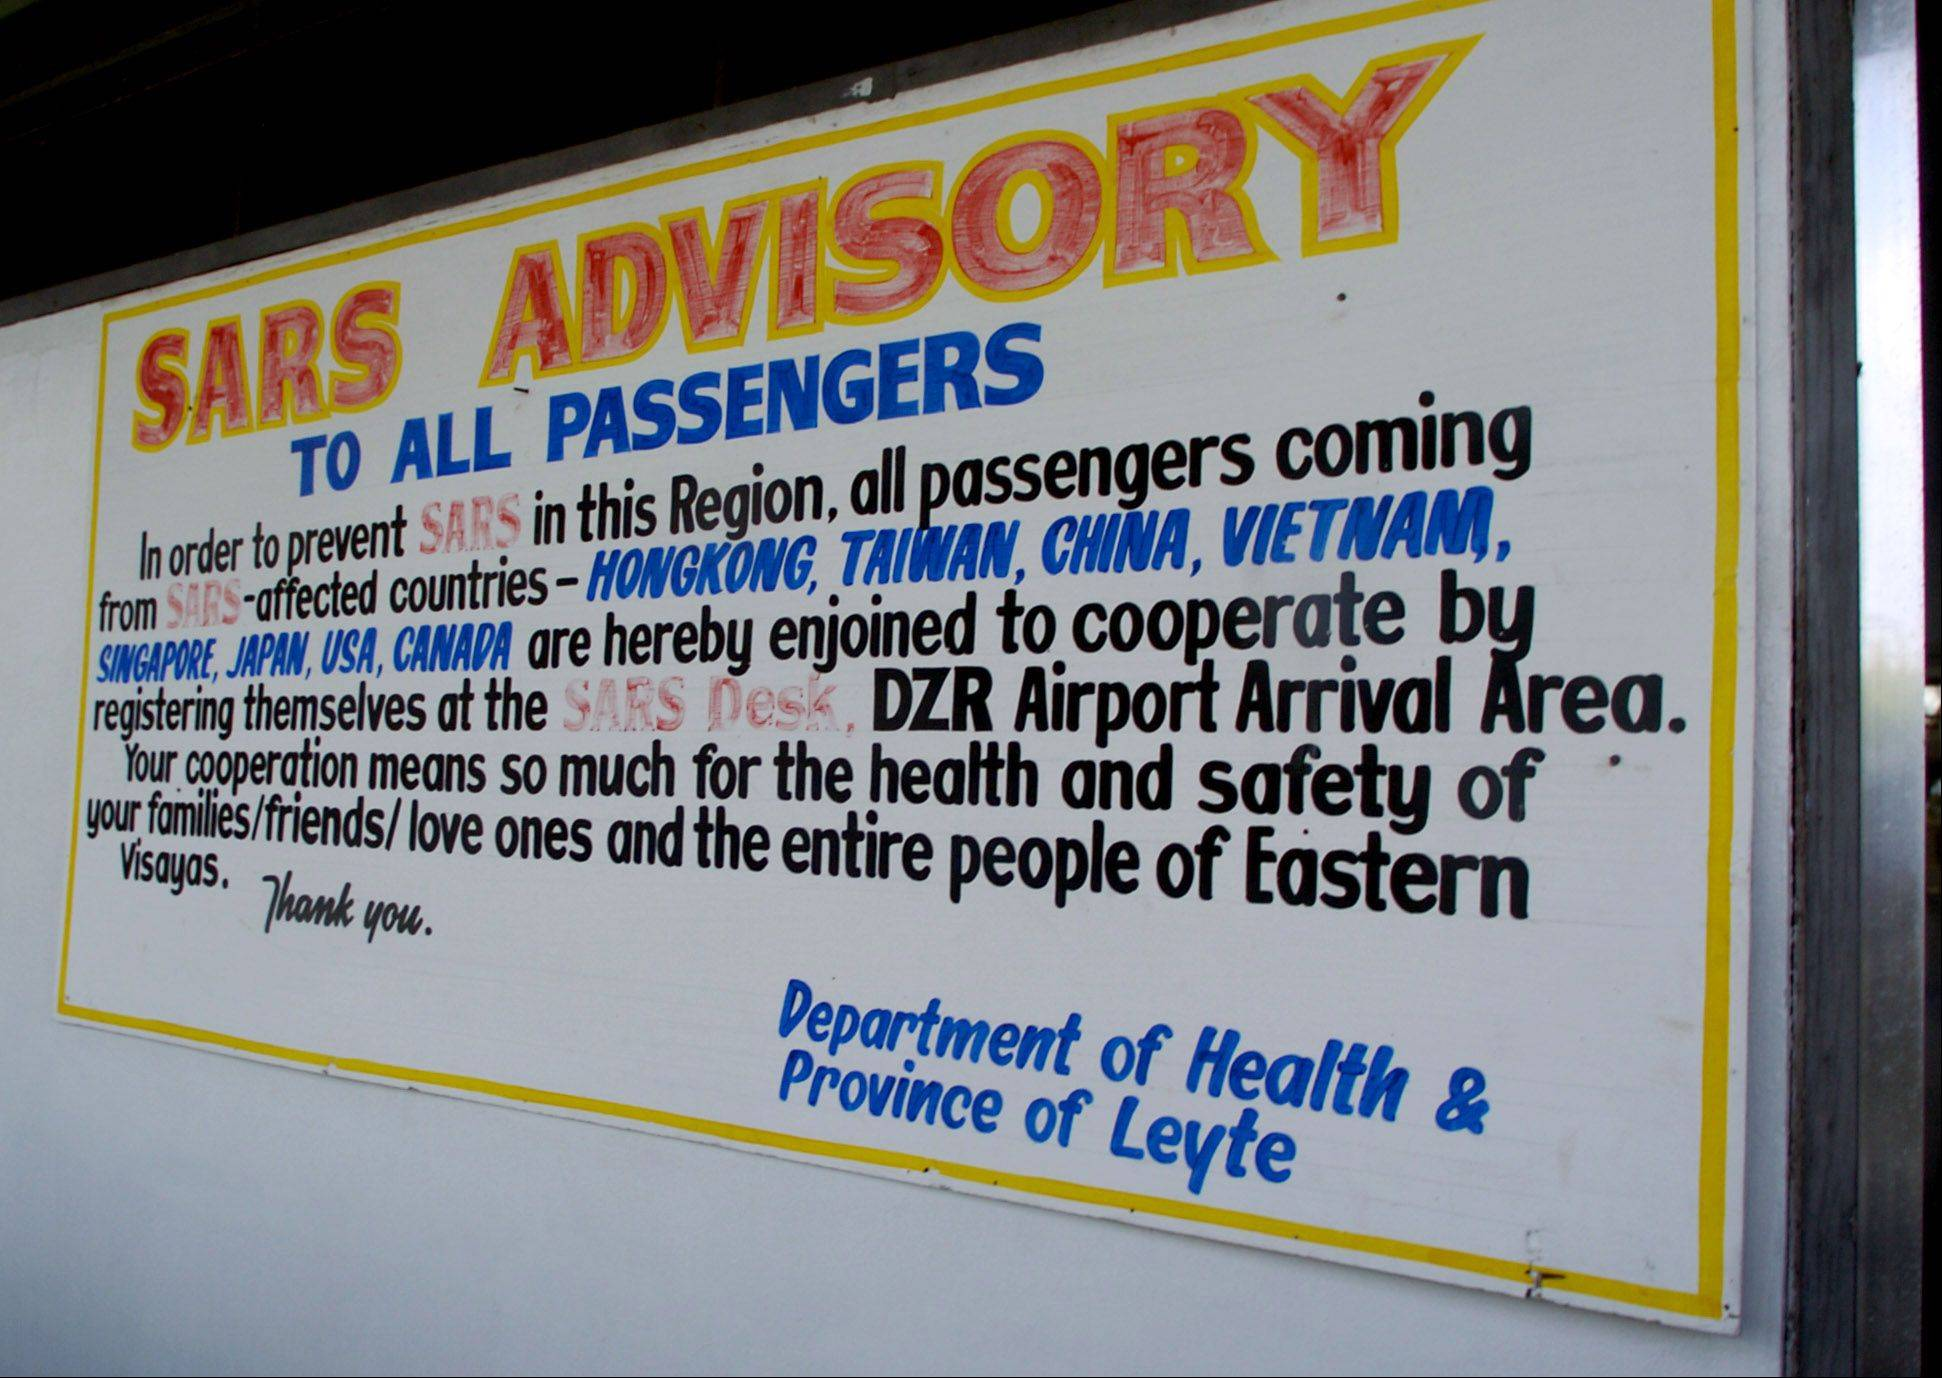 DAILY HERALD/MARK WELSHA SARS warning is seen at the entrance of the Leyte-Tacloban airport in the Philippines during the SARS outbreak in 2003.